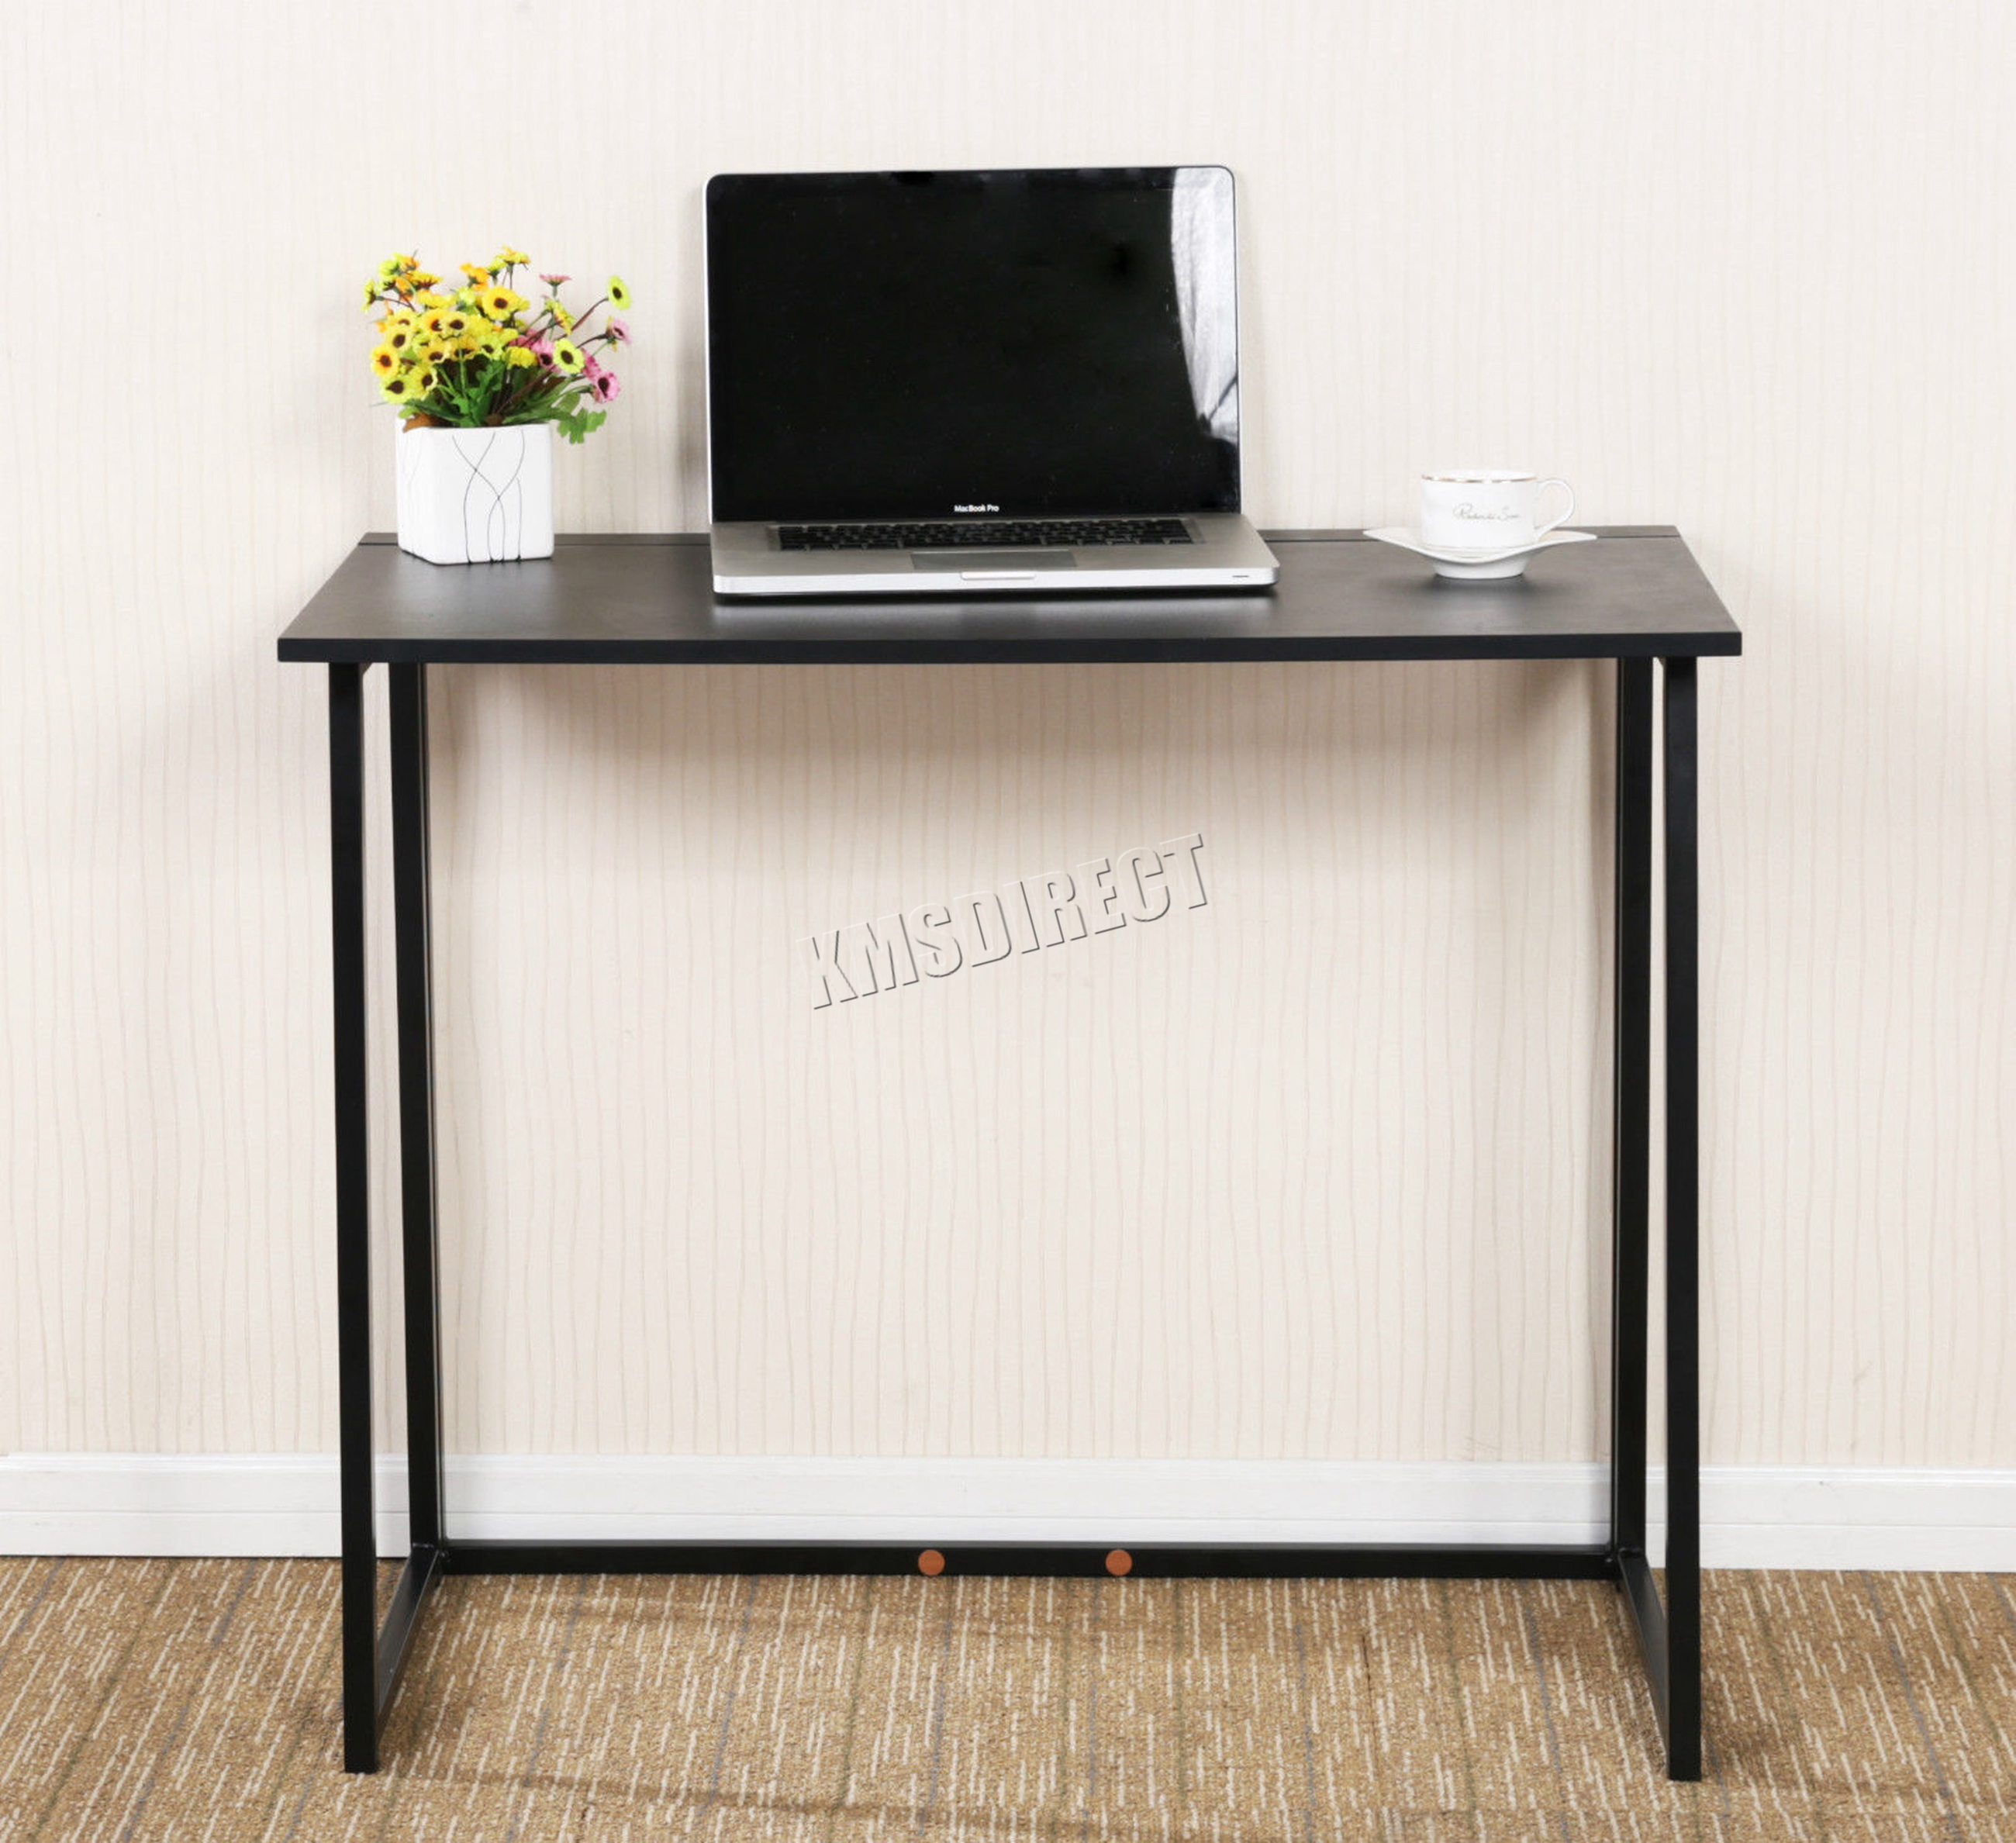 Sentinel Foxhunter Foldable Computer Desk Folding Laptop Pc Table Home Office Study Cd03